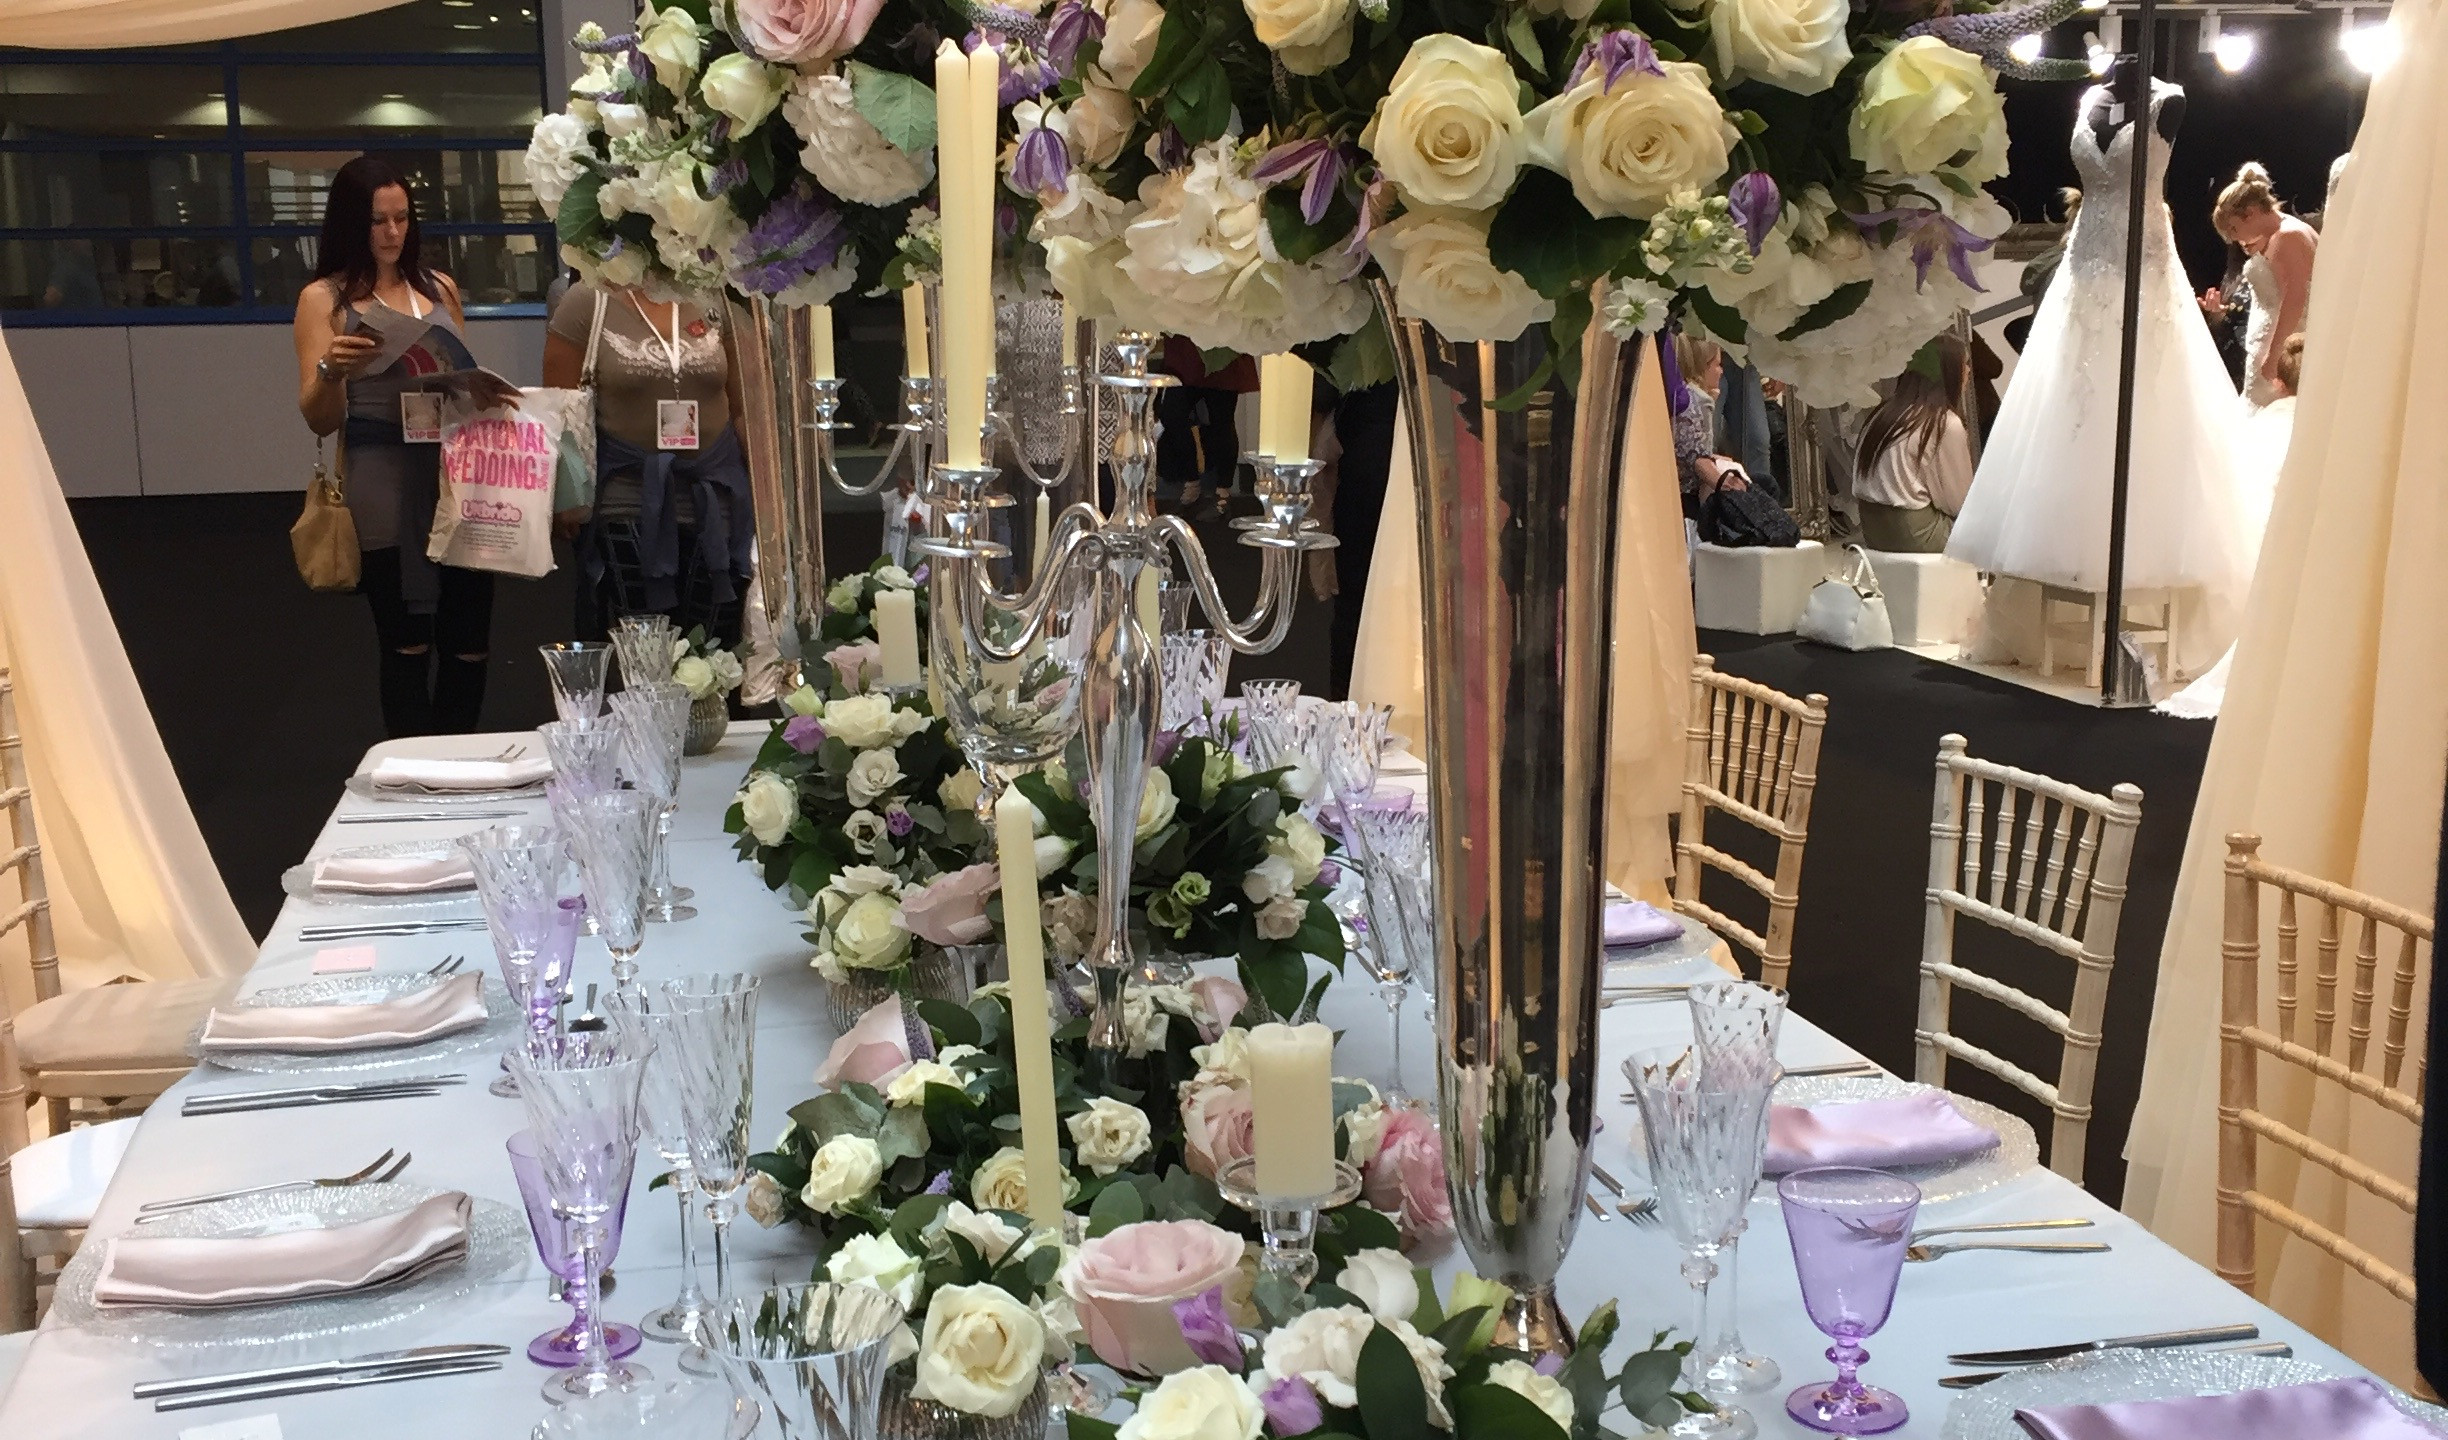 Another showstopper from Stephanie Saunders Luxury Floral Design